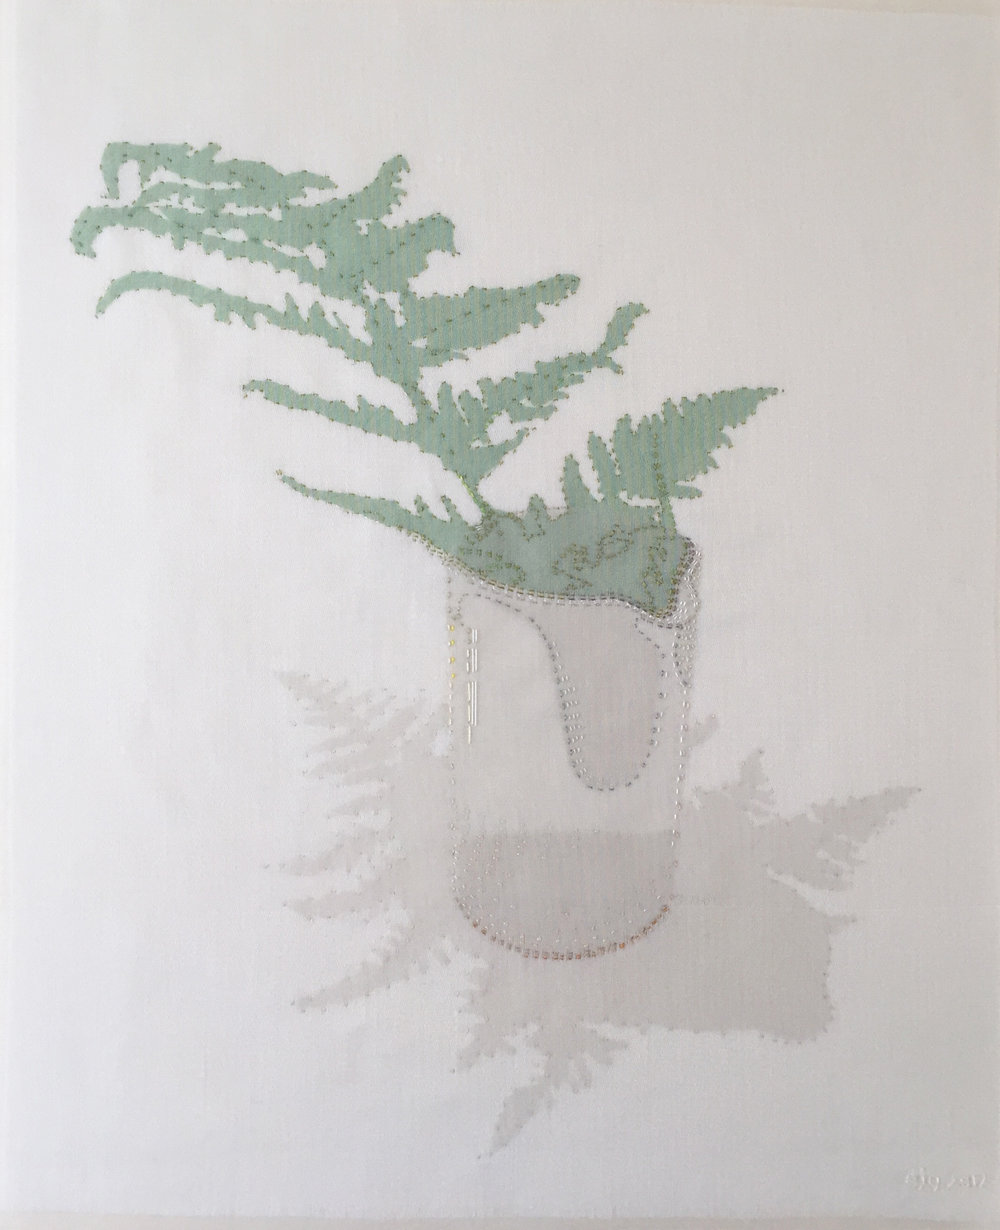 Fern in pourer 2017 hand stitched silk organza on linen – 26cm x 32cm Oak frame 42cm x 52cm - Available at Contemporary Applied Arts